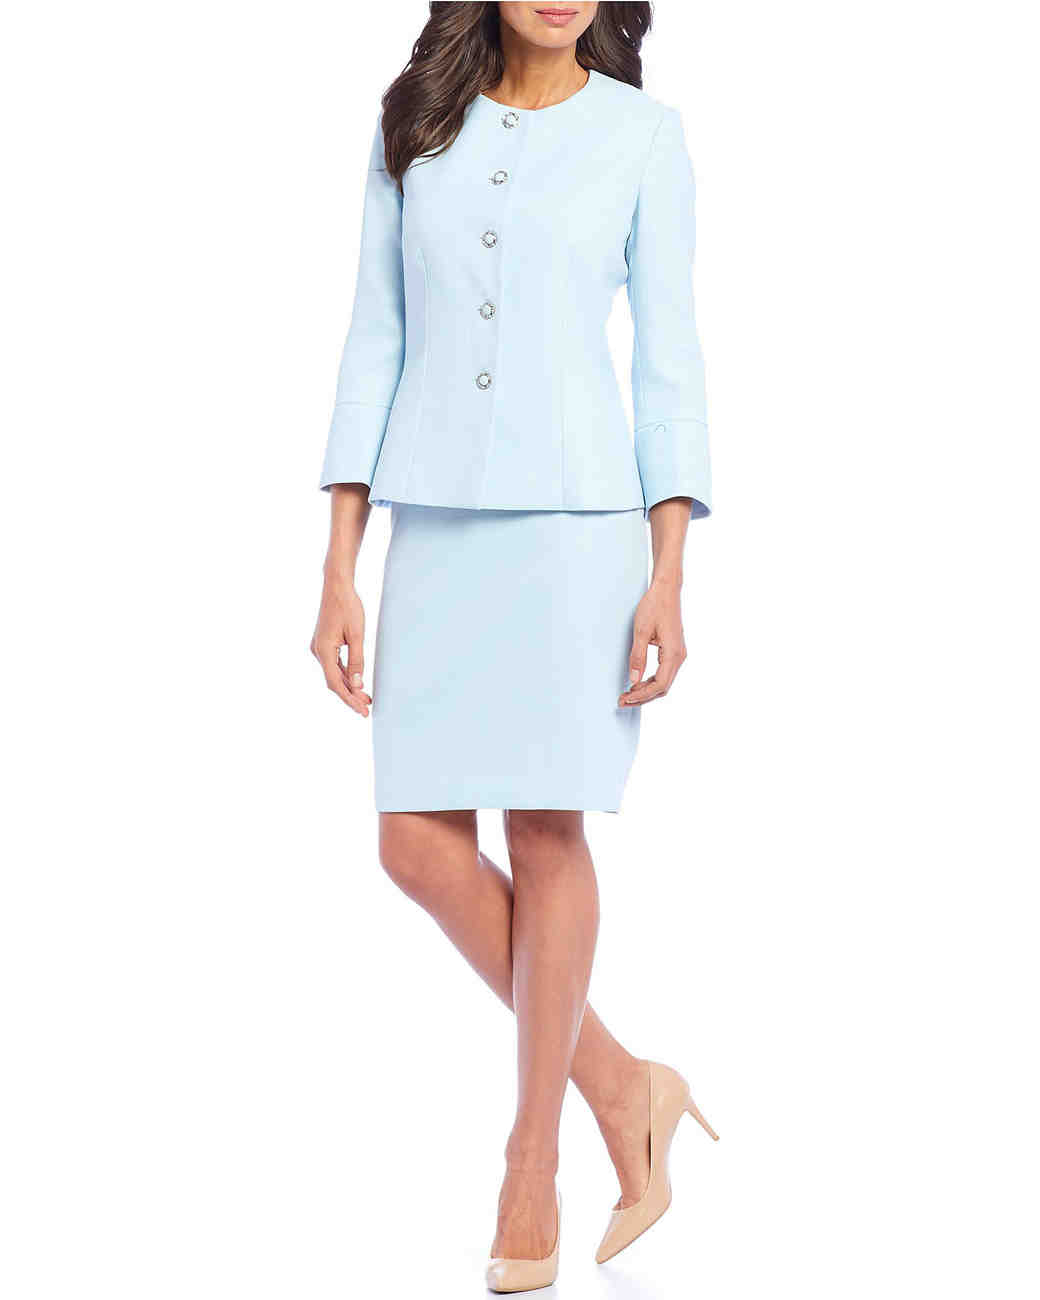 Five-Button Two-Piece Skirt Suit